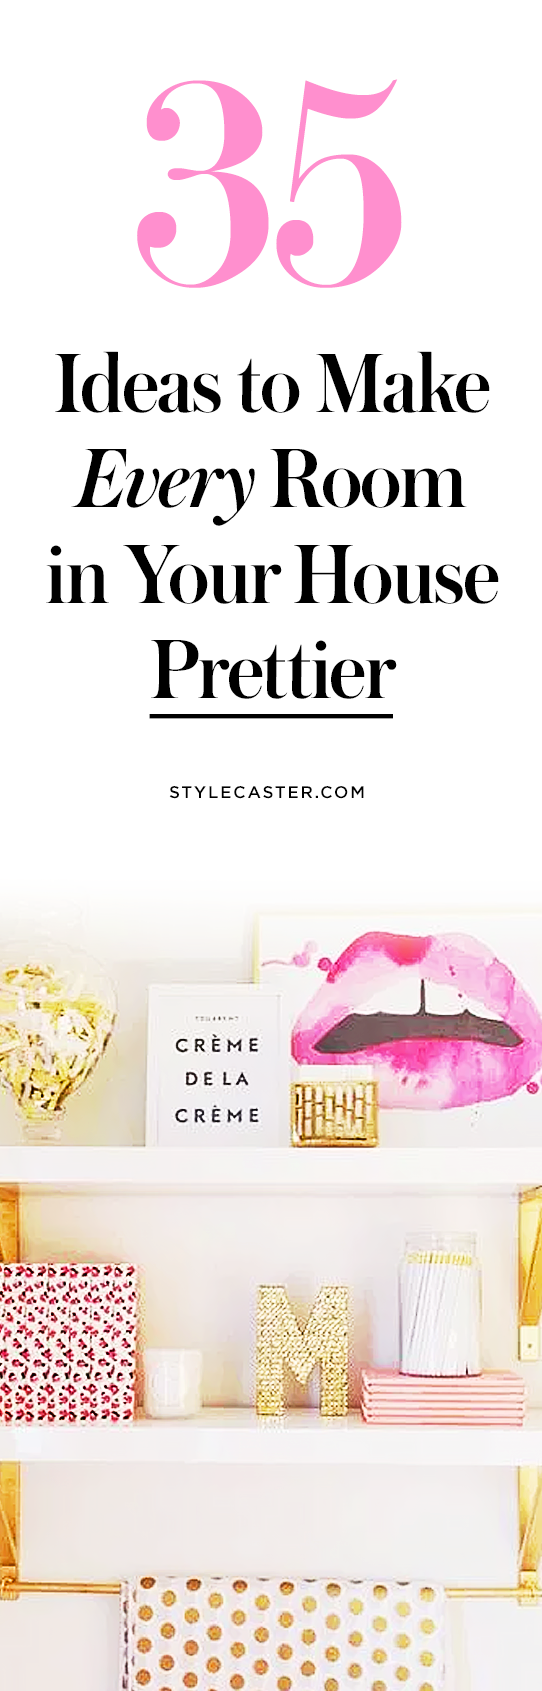 35 Design Ideas to Make Every Room in Your House Prettier | Feminine Home Decorating | @stylecaster